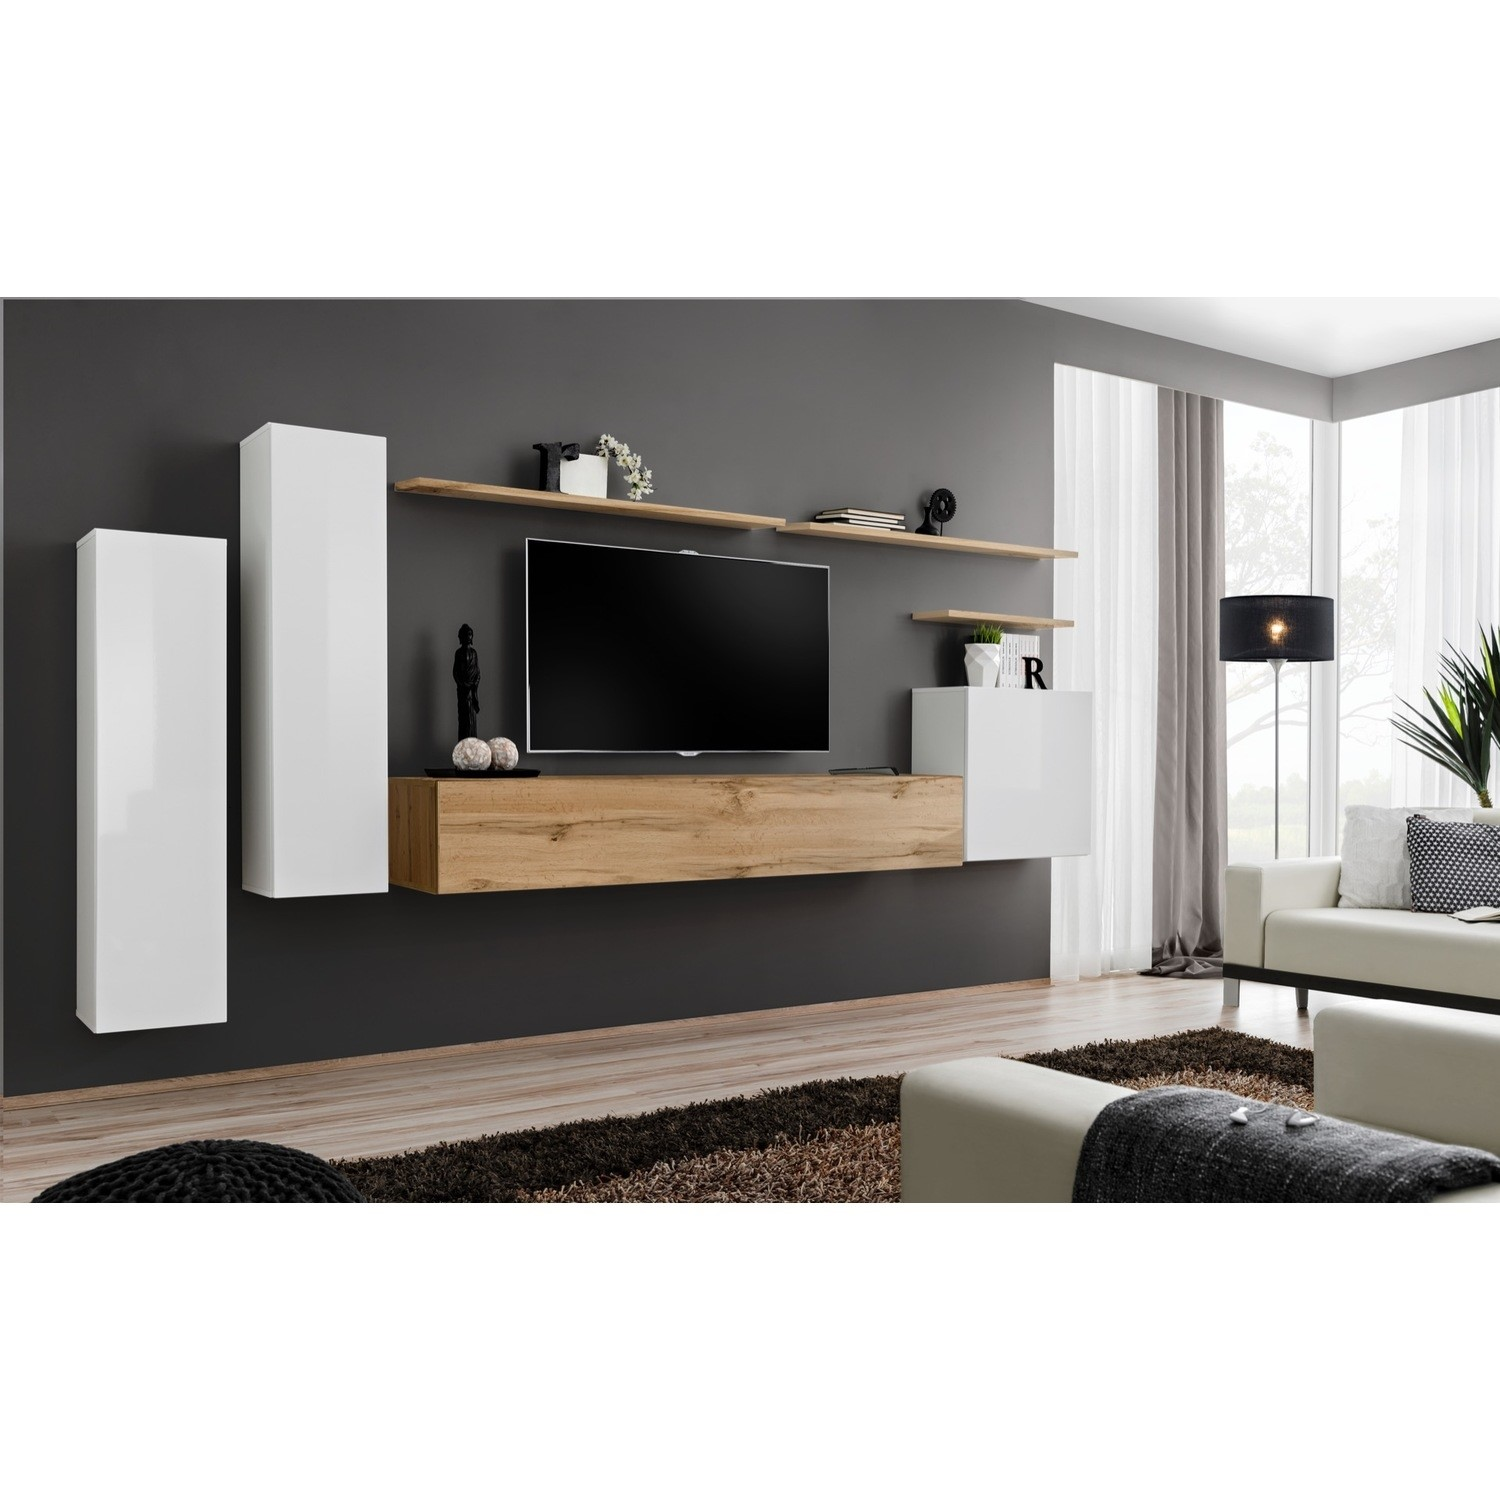 Floating TV Unit with White High Gloss Wall Hanging Units  TV's up to 50  Neo